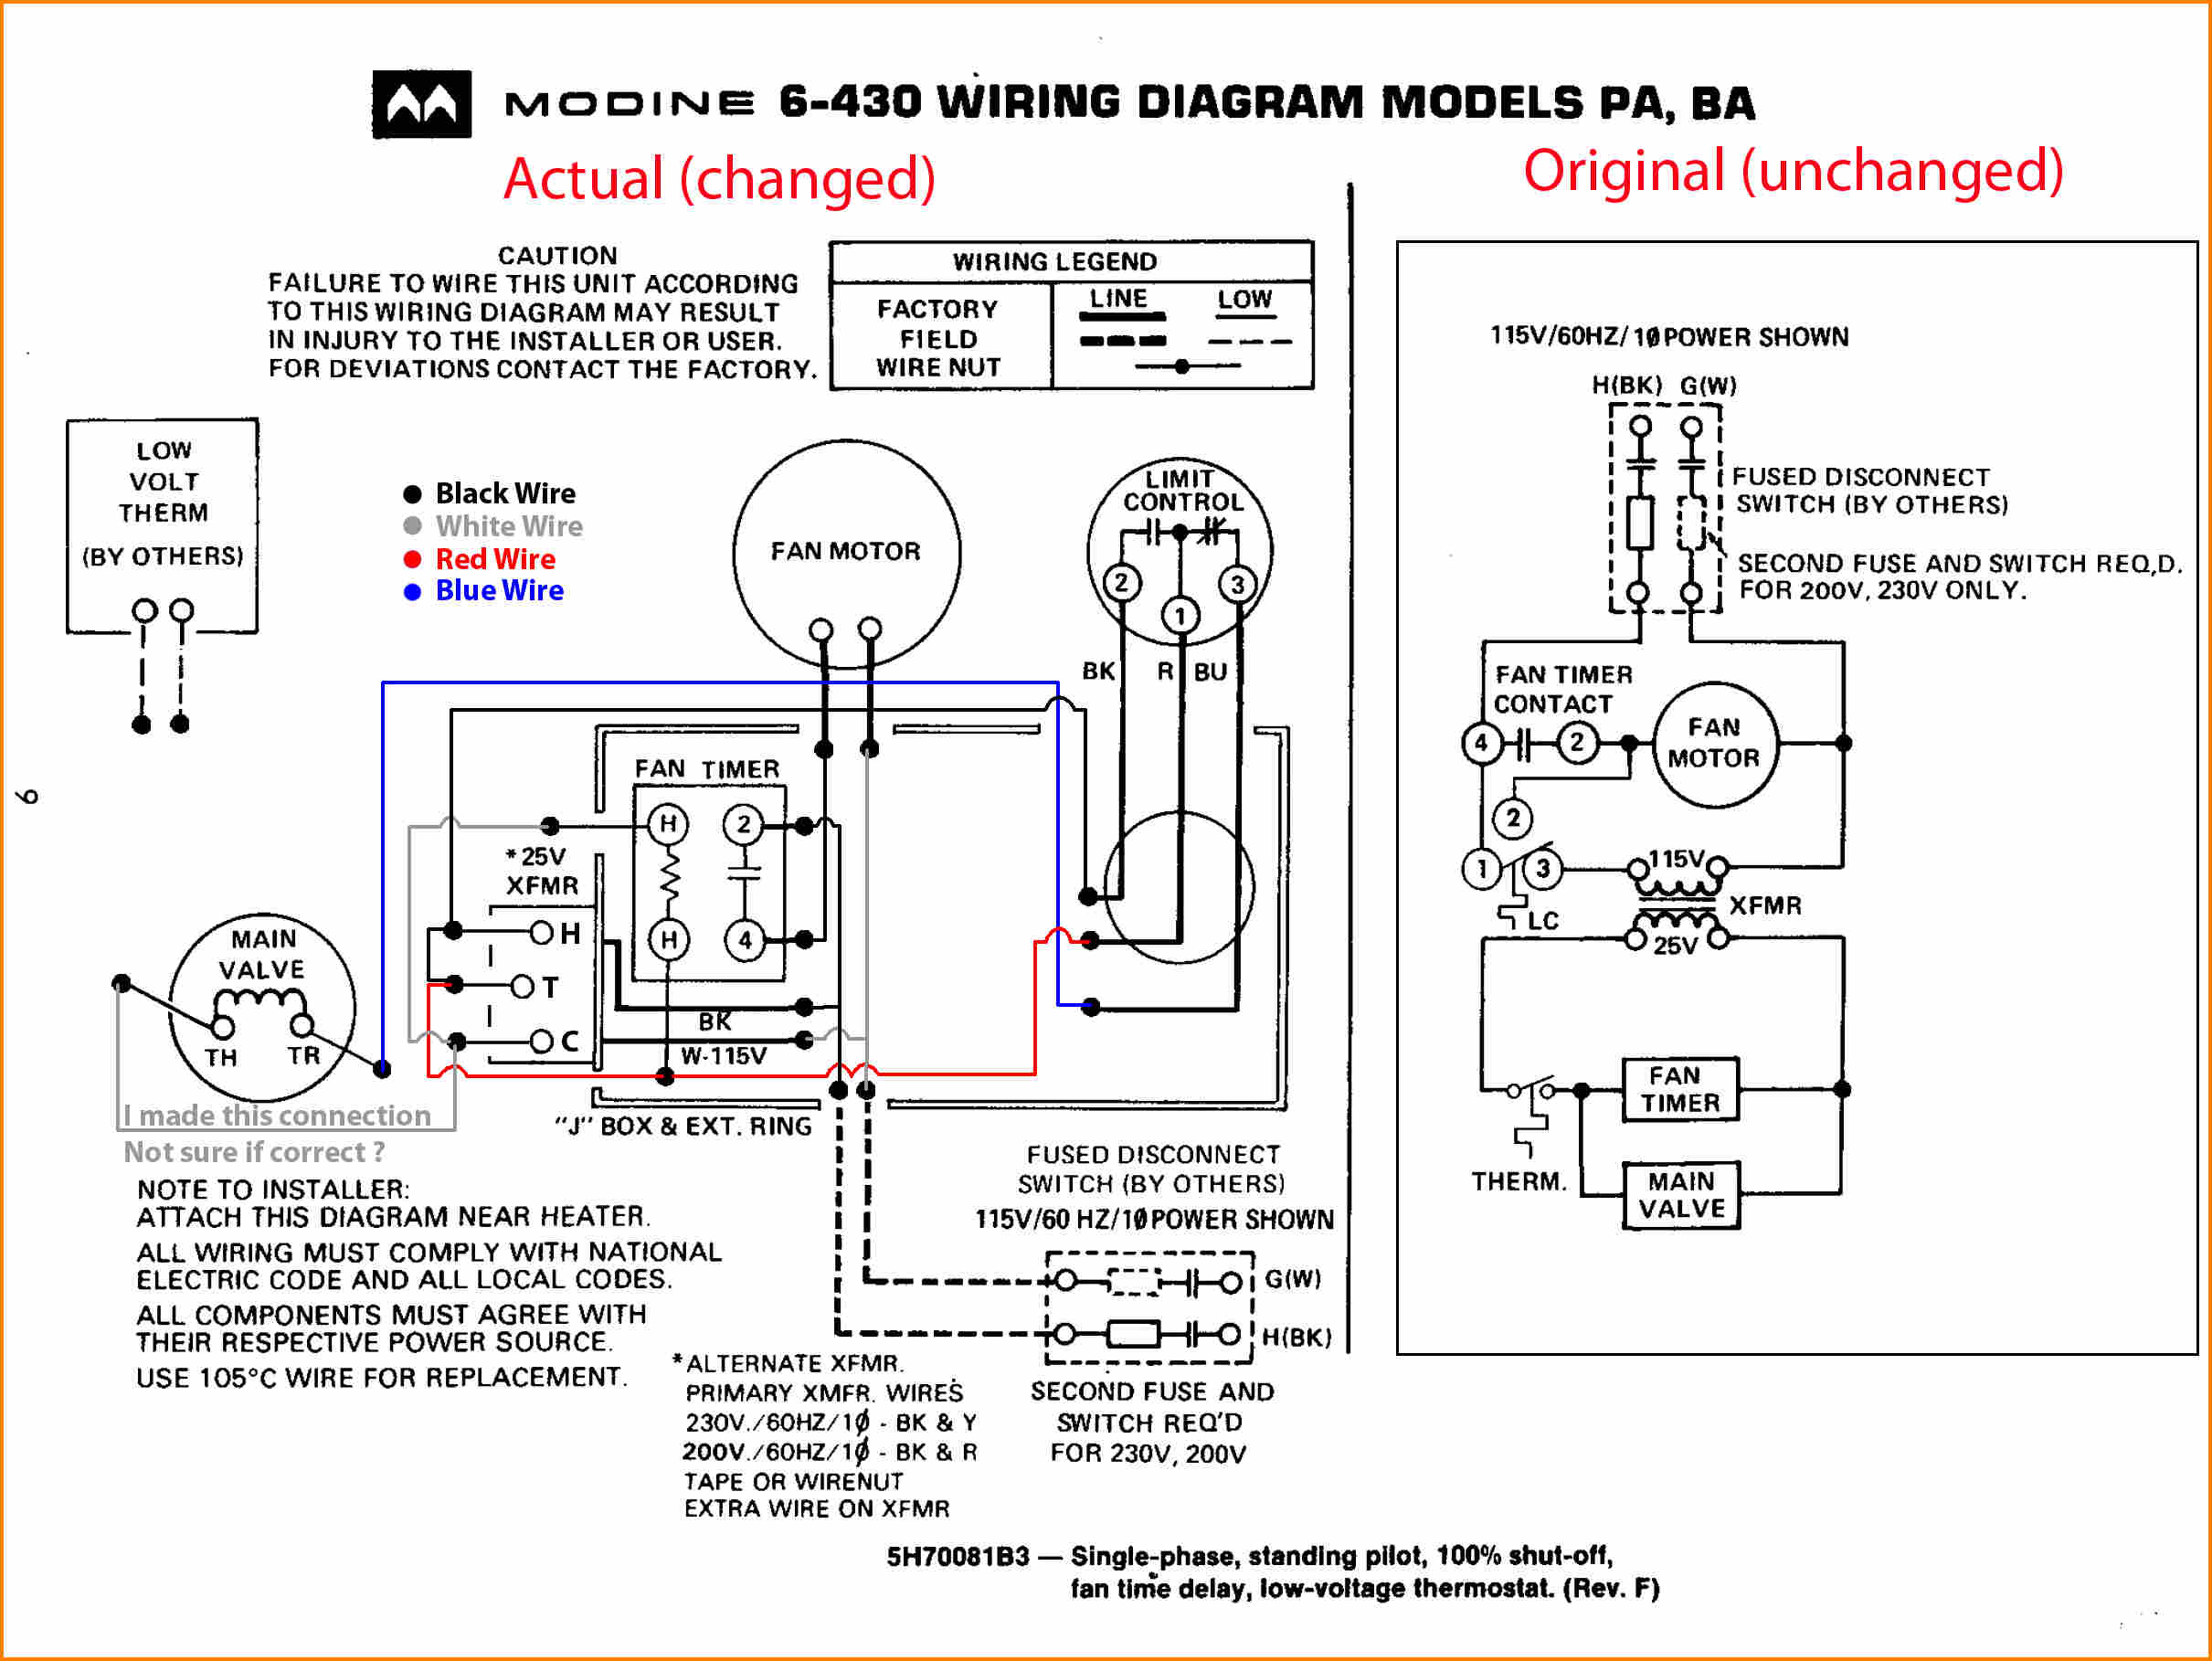 ge furnace blower motor wiring diagram Collection-Ge Furnace Blower Motor  Wiring Diagram Goodman Electric